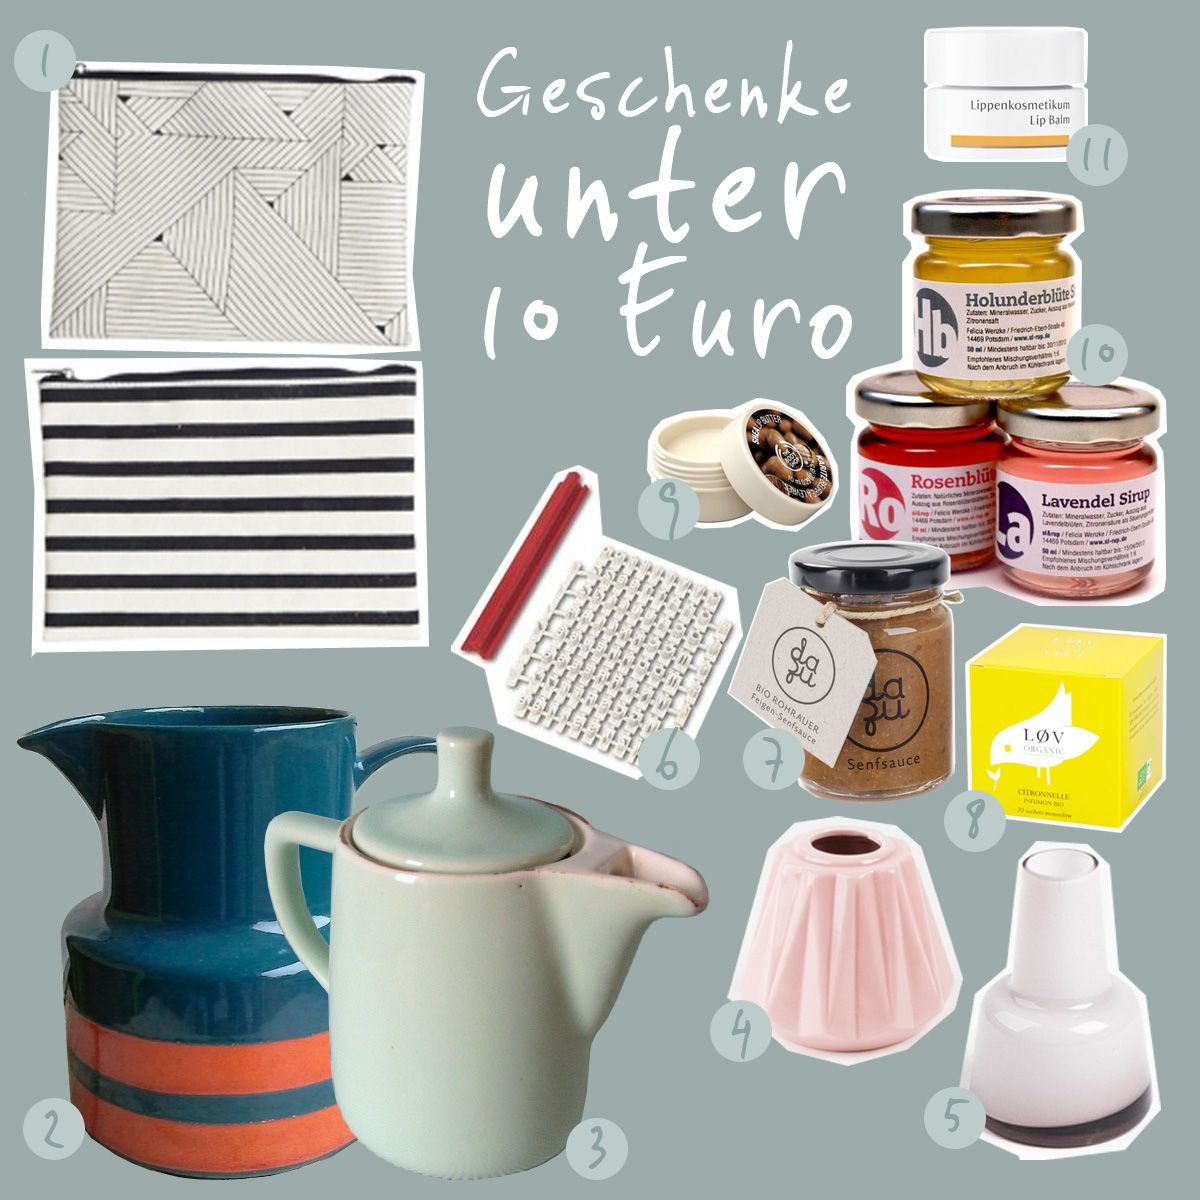 Best geschenke unter euro ideas on pinterest